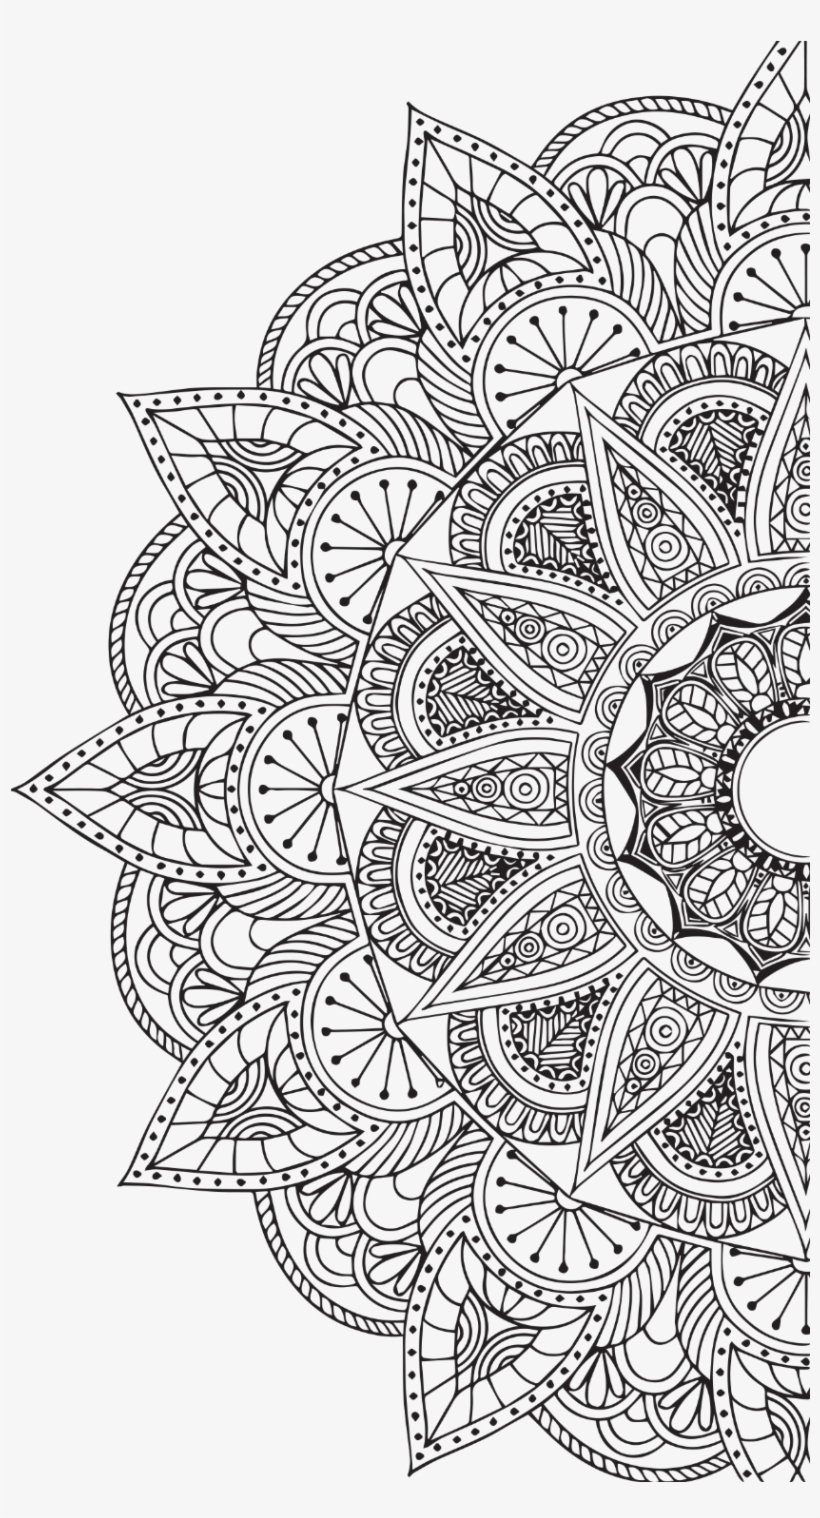 Mandala White Png Vector Black And White - Holistic Islam: Sufism, Transformation, And The Needs, transparent png #5140079